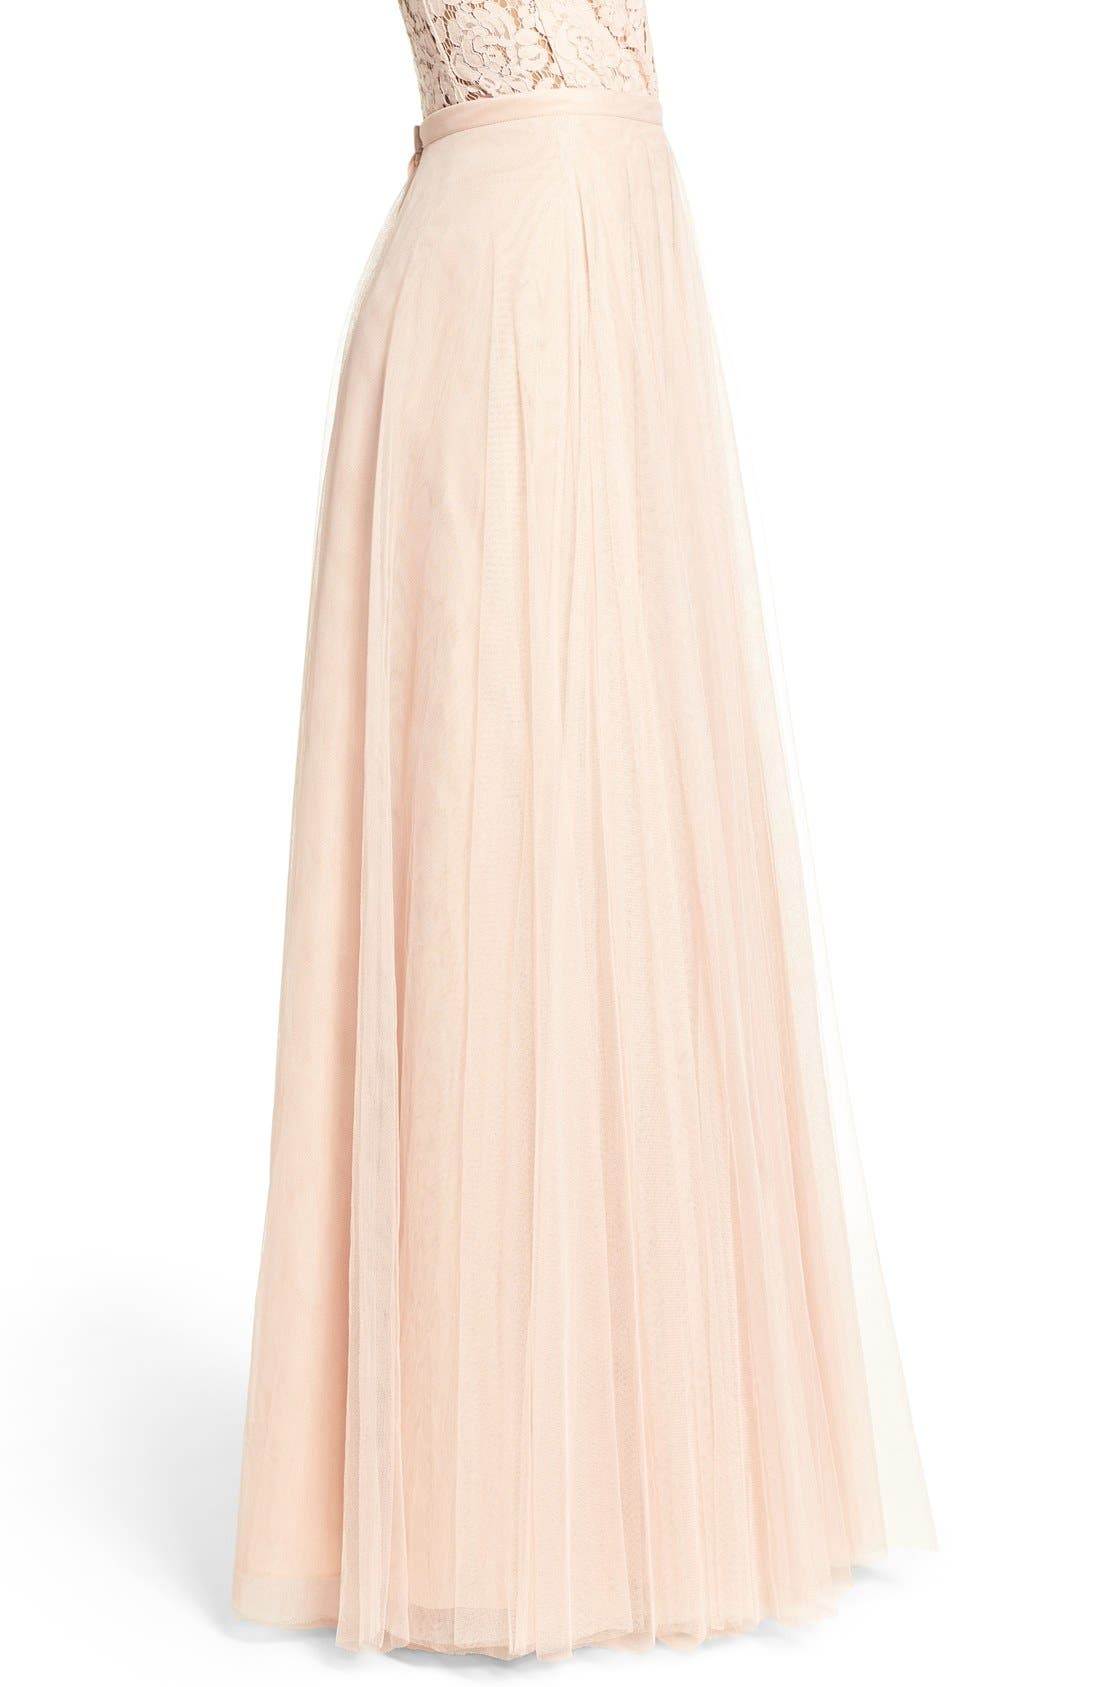 Winslow Long Tulle A-Line Skirt,                             Alternate thumbnail 9, color,                             CAMEO PINK